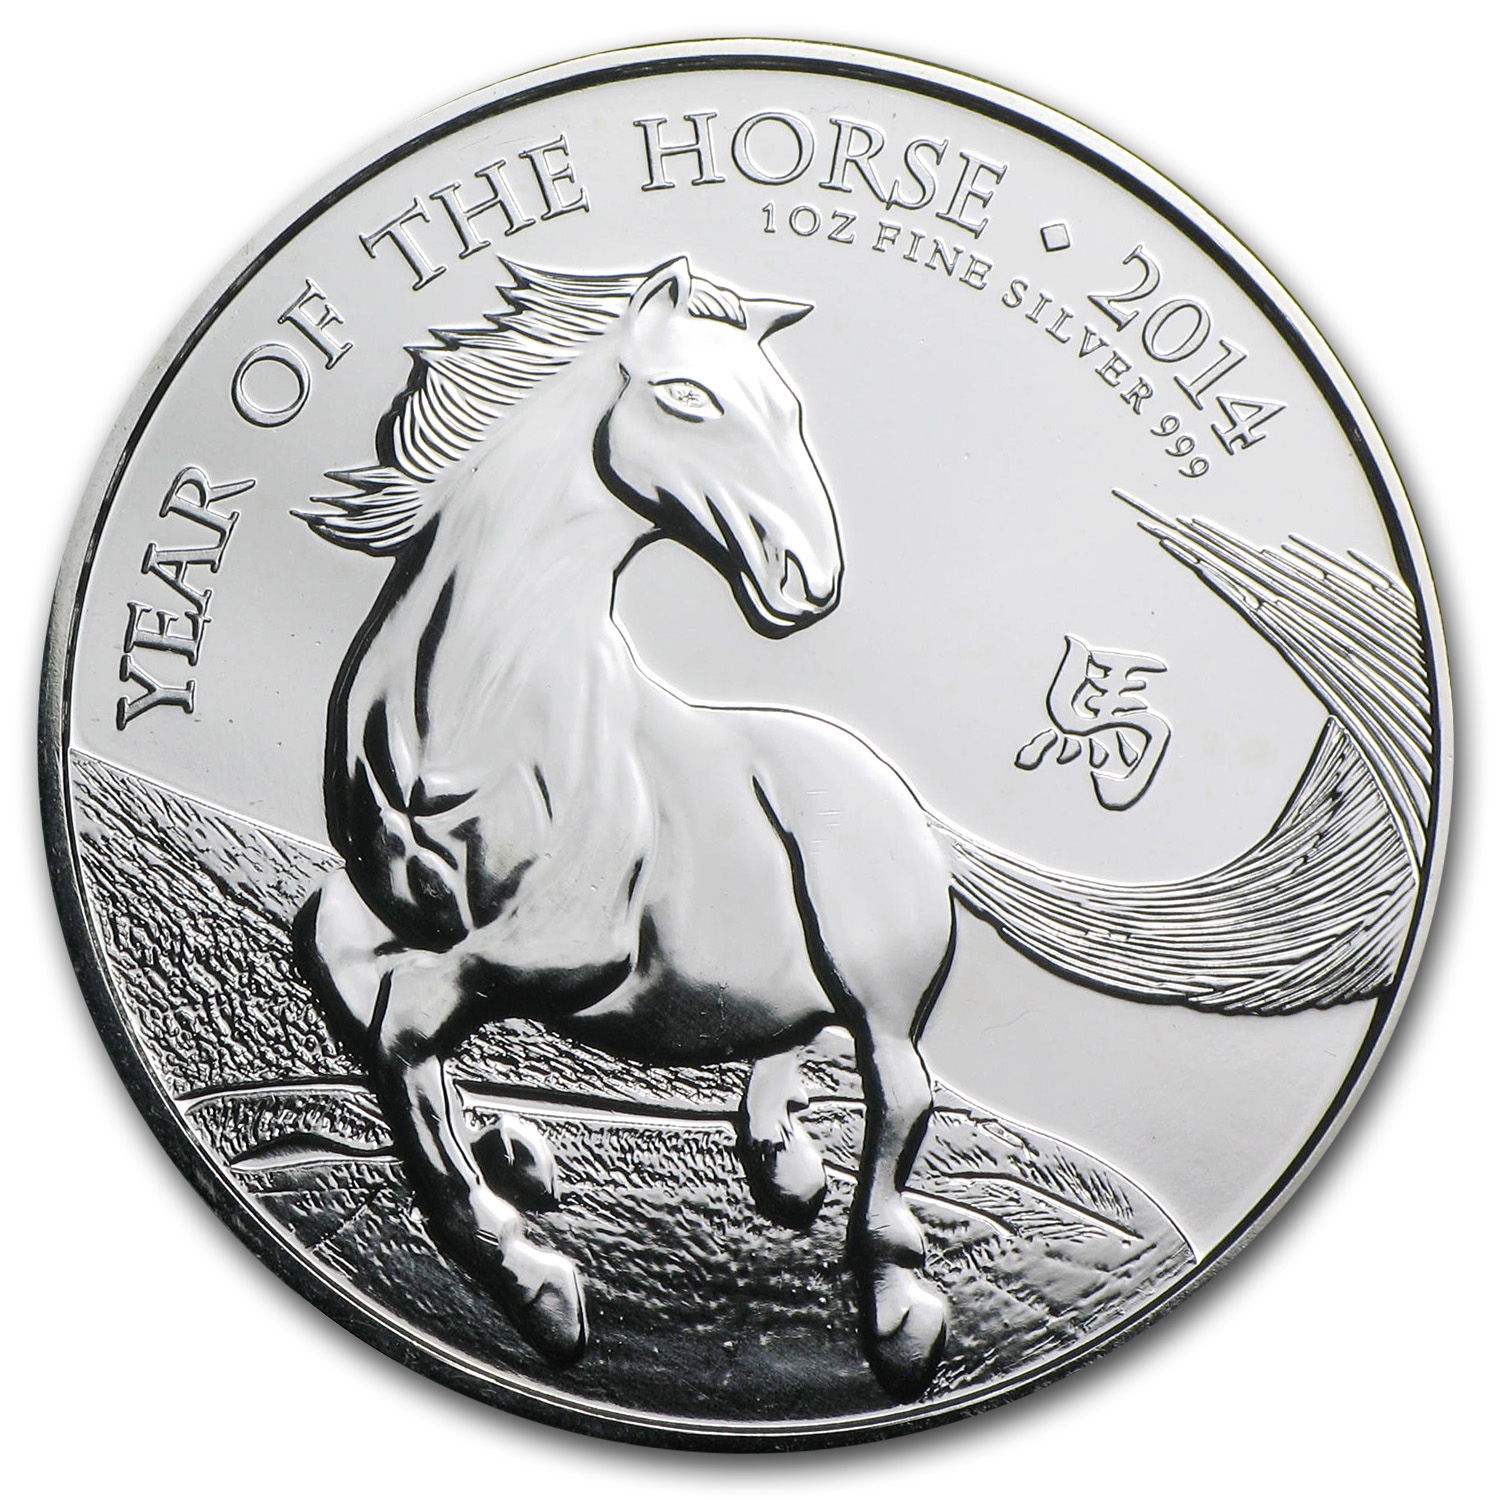 2014 Great Britain 1 oz Silver Year of the Horse (Spotted)